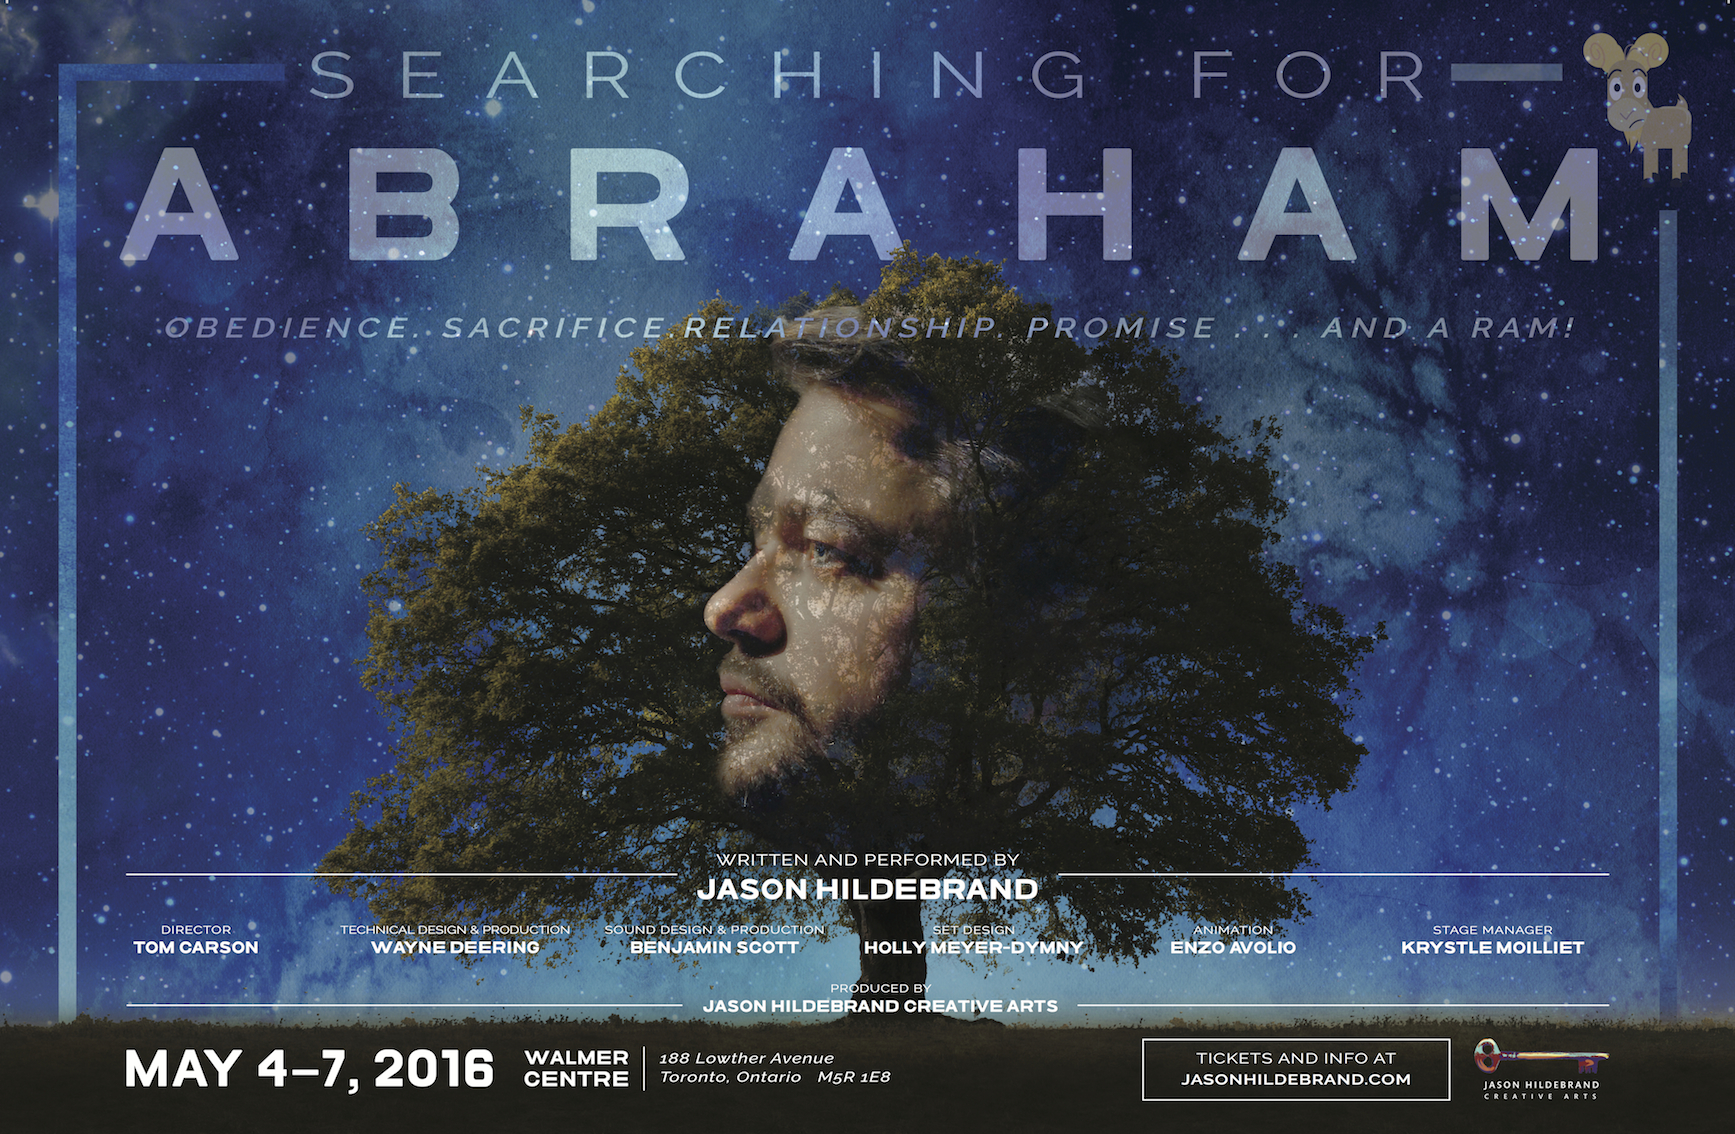 Searching for Abraham